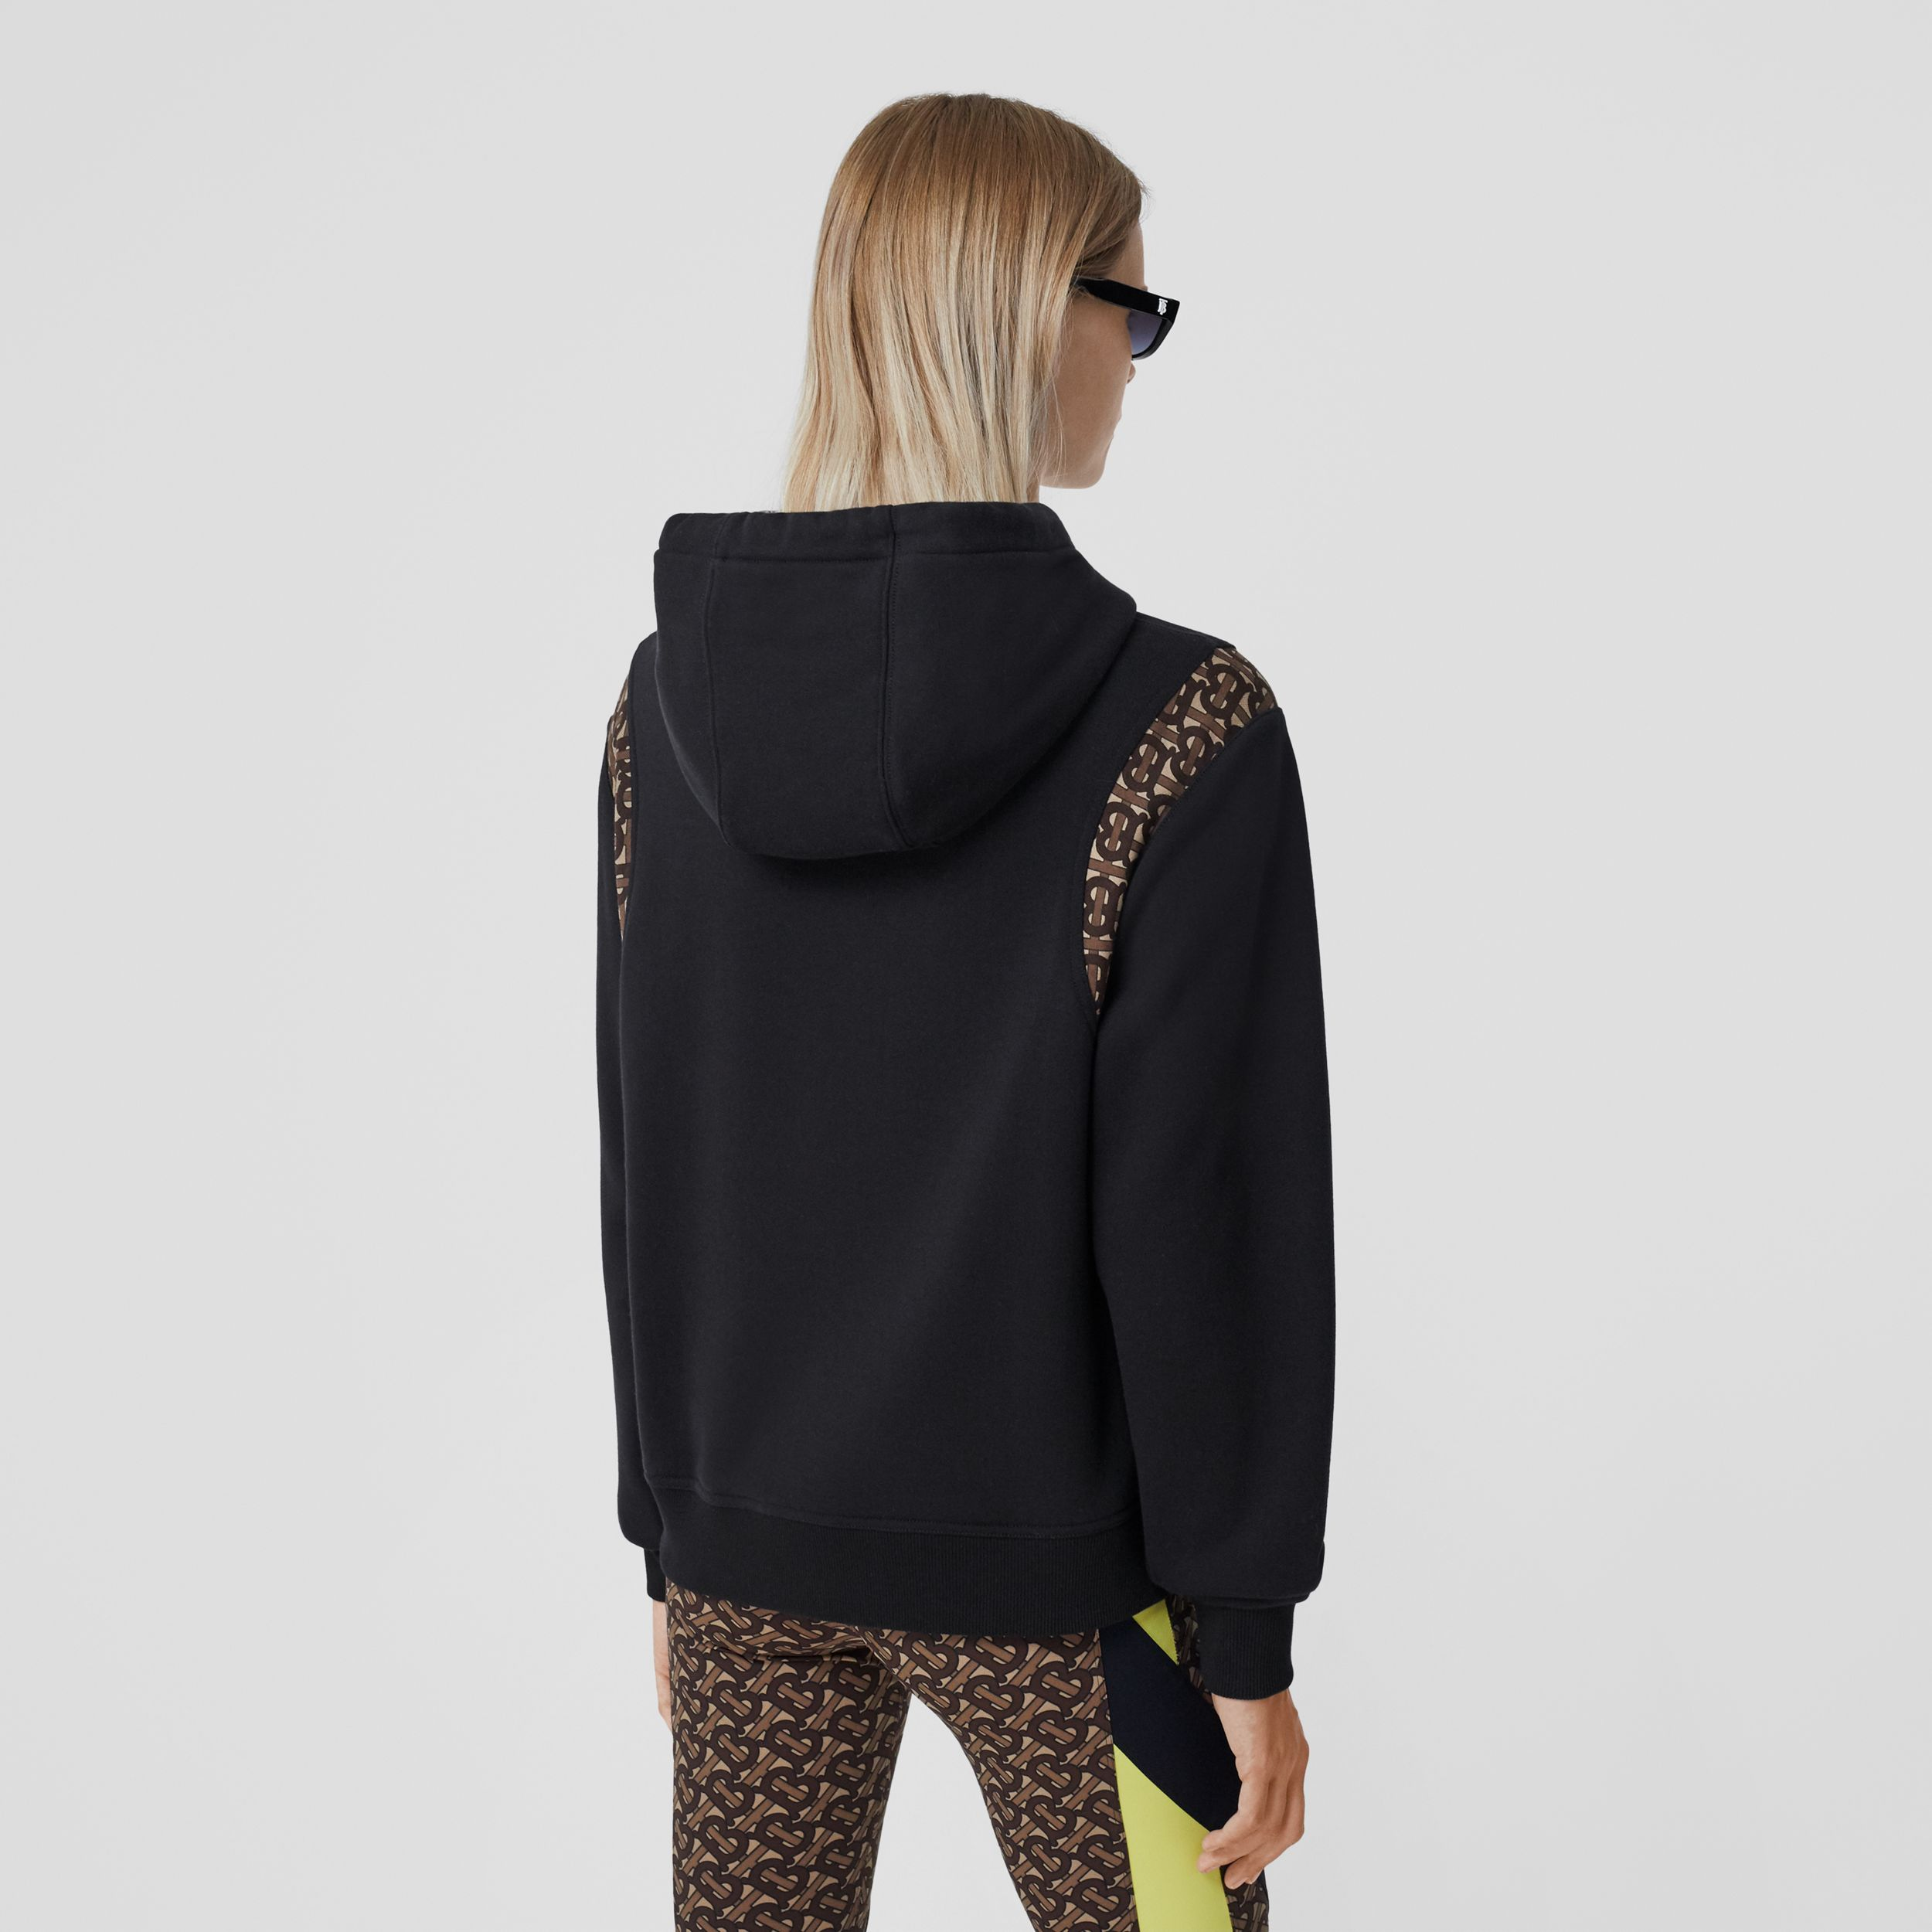 Monogram Print Panel Cotton Oversized Hoodie in Black - Women | Burberry - 3